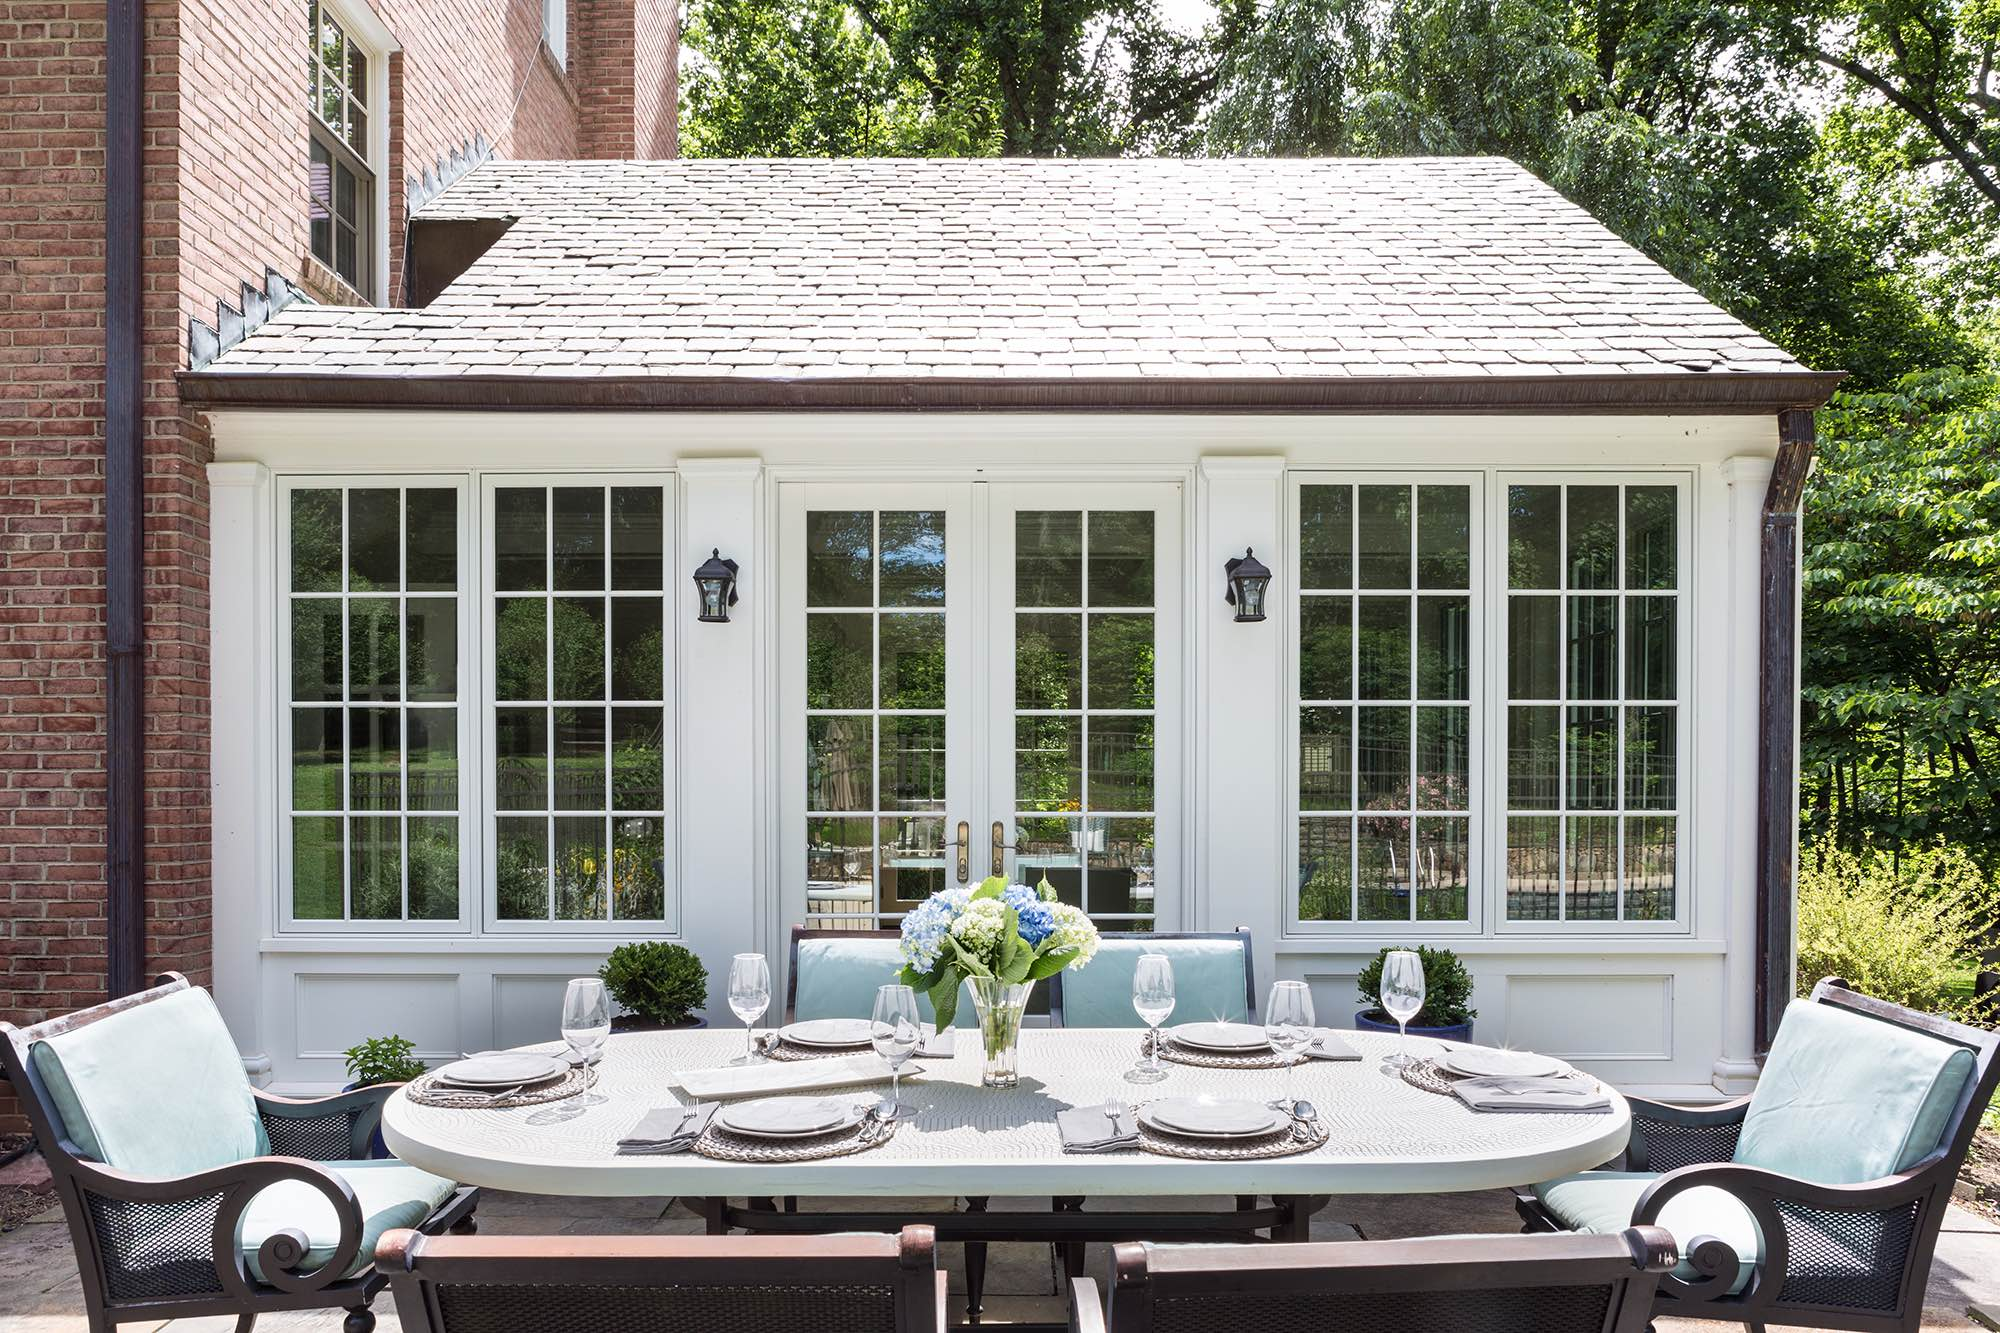 Dining table with bronze and celadon outdoor seating on sunny brick patio